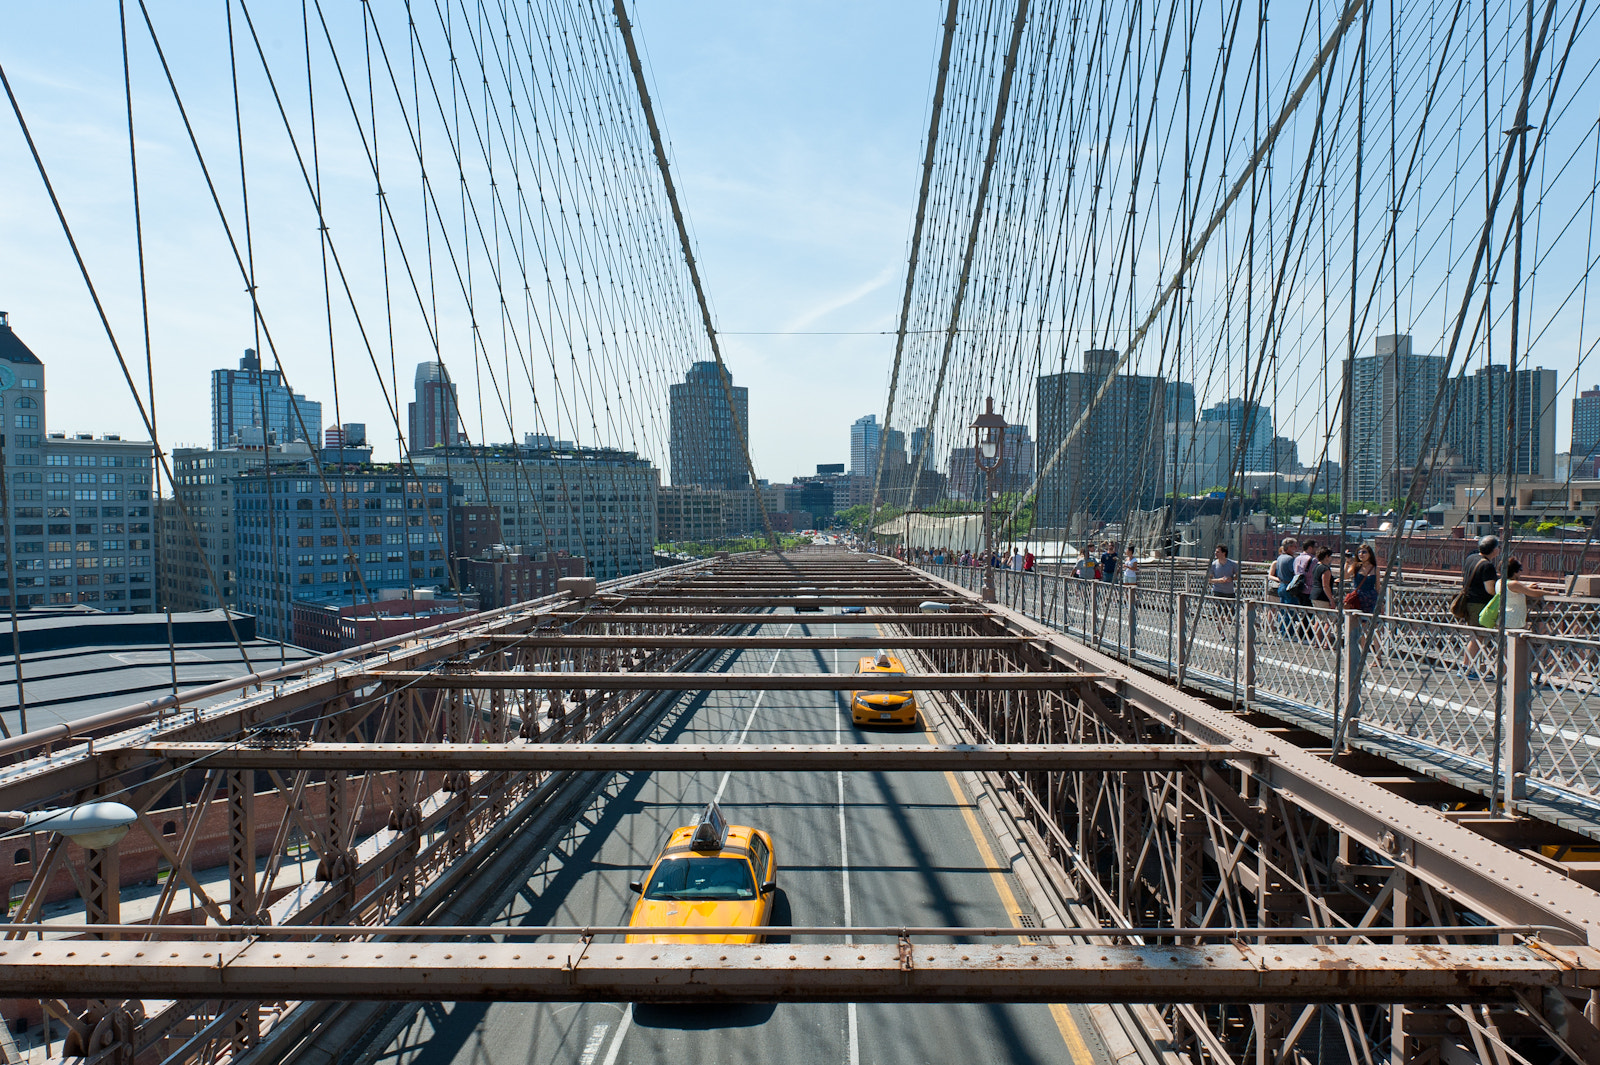 Photograph Manhattan - Brooklyn Bridge by Richard Drukker on 500px